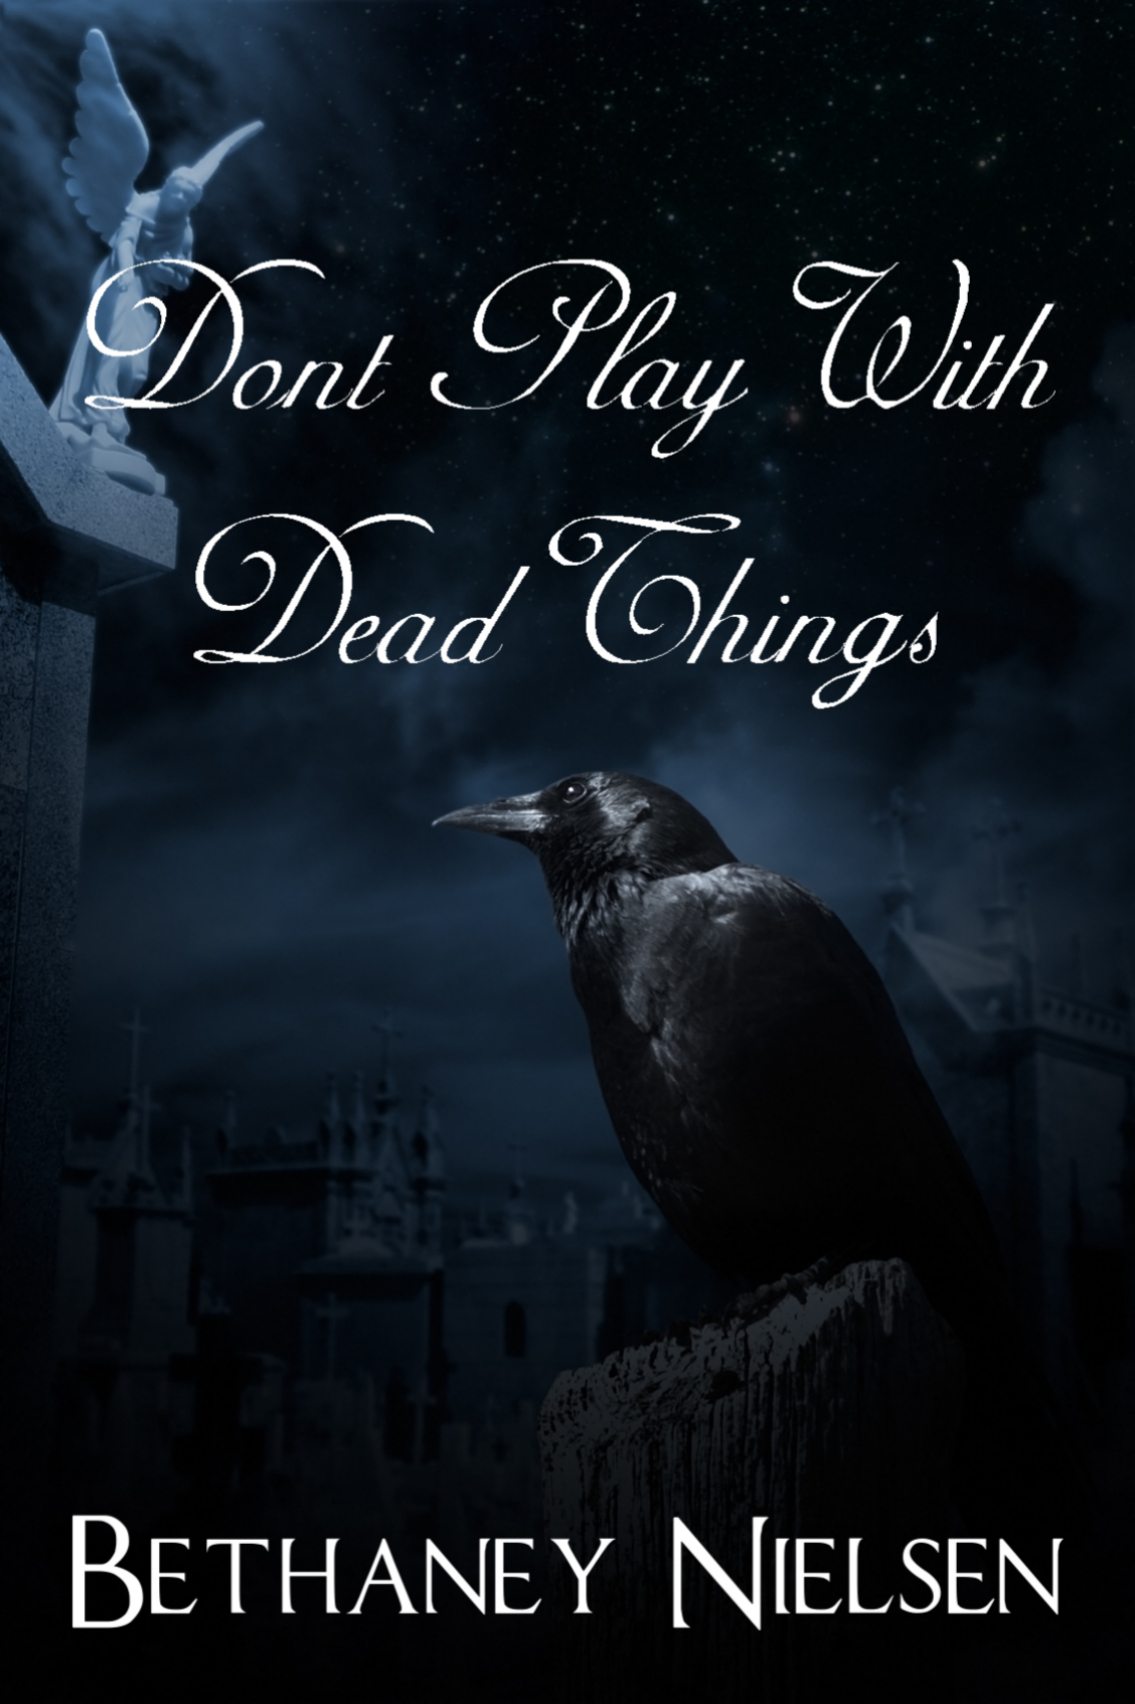 Bethaney Nielsen - Don't Play with Dead Things